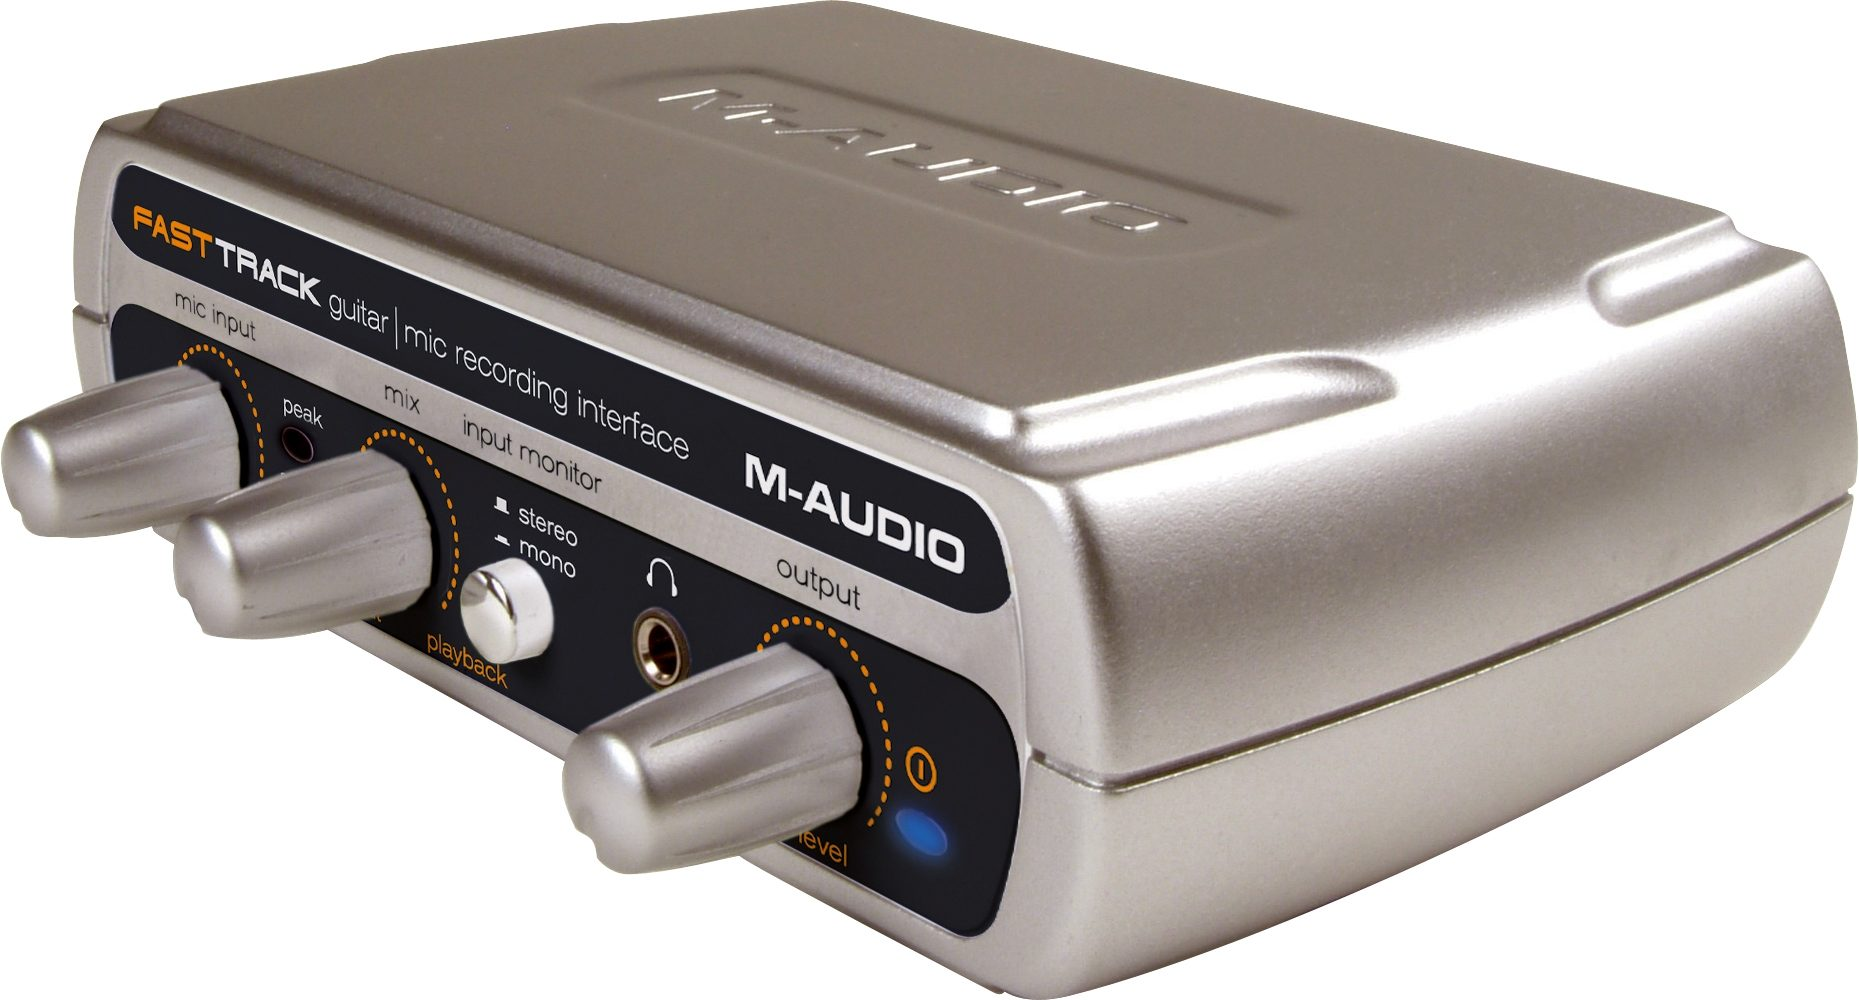 m audio fast track review 2011